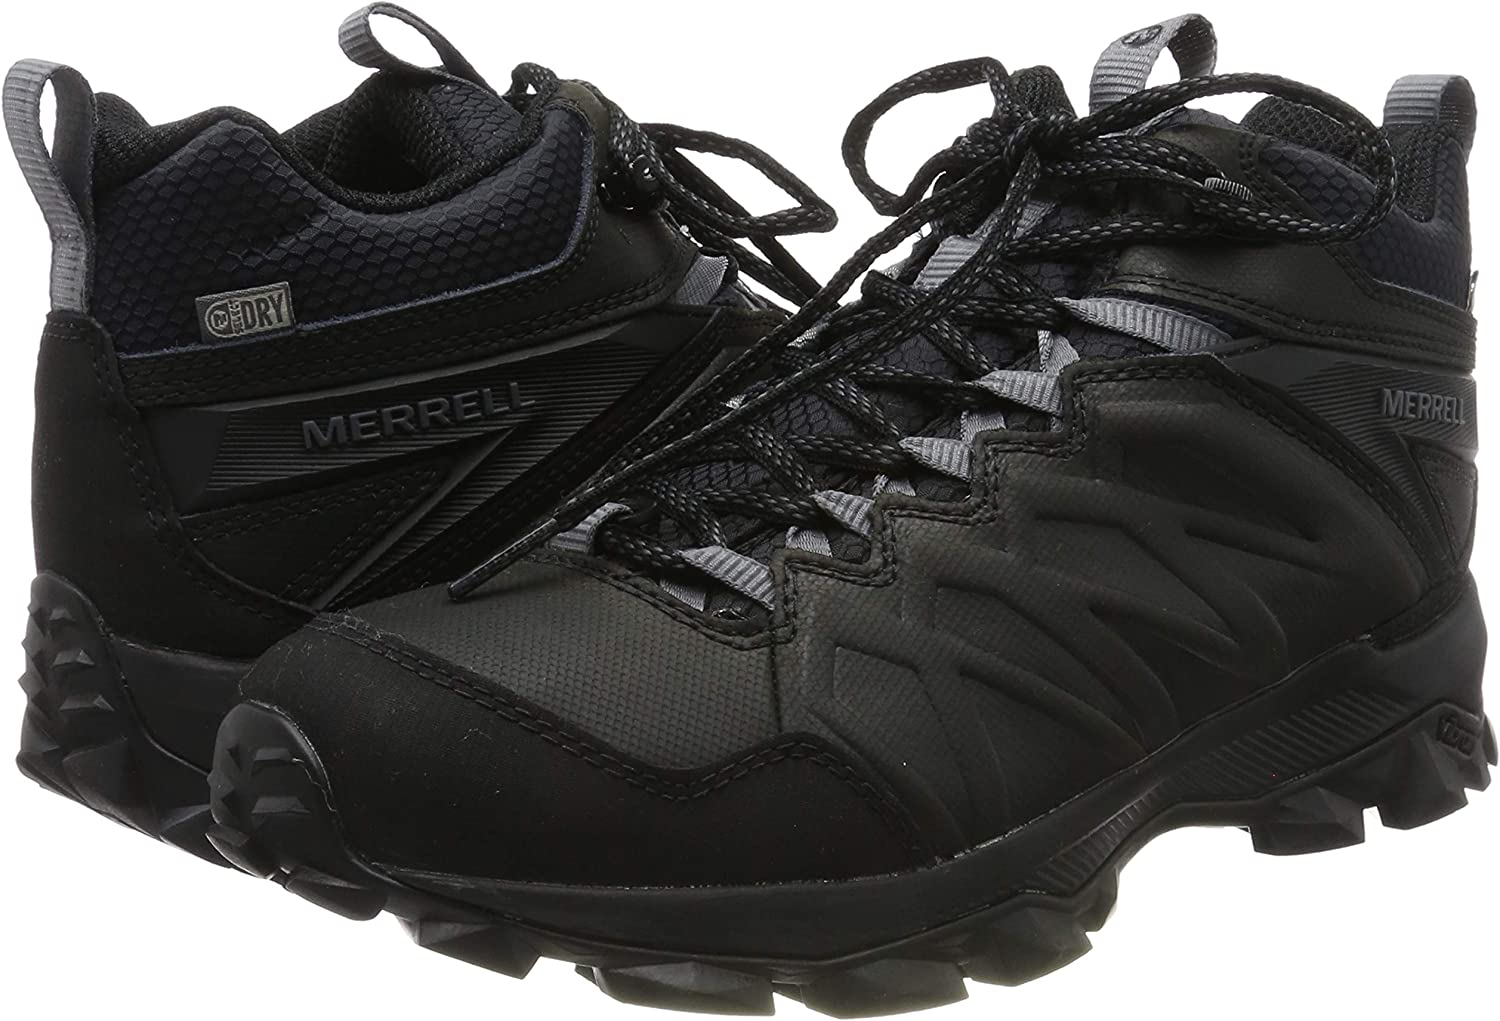 Merrell Mens Thermo Freeze Mid Waterproof High Rise Hiking Boots